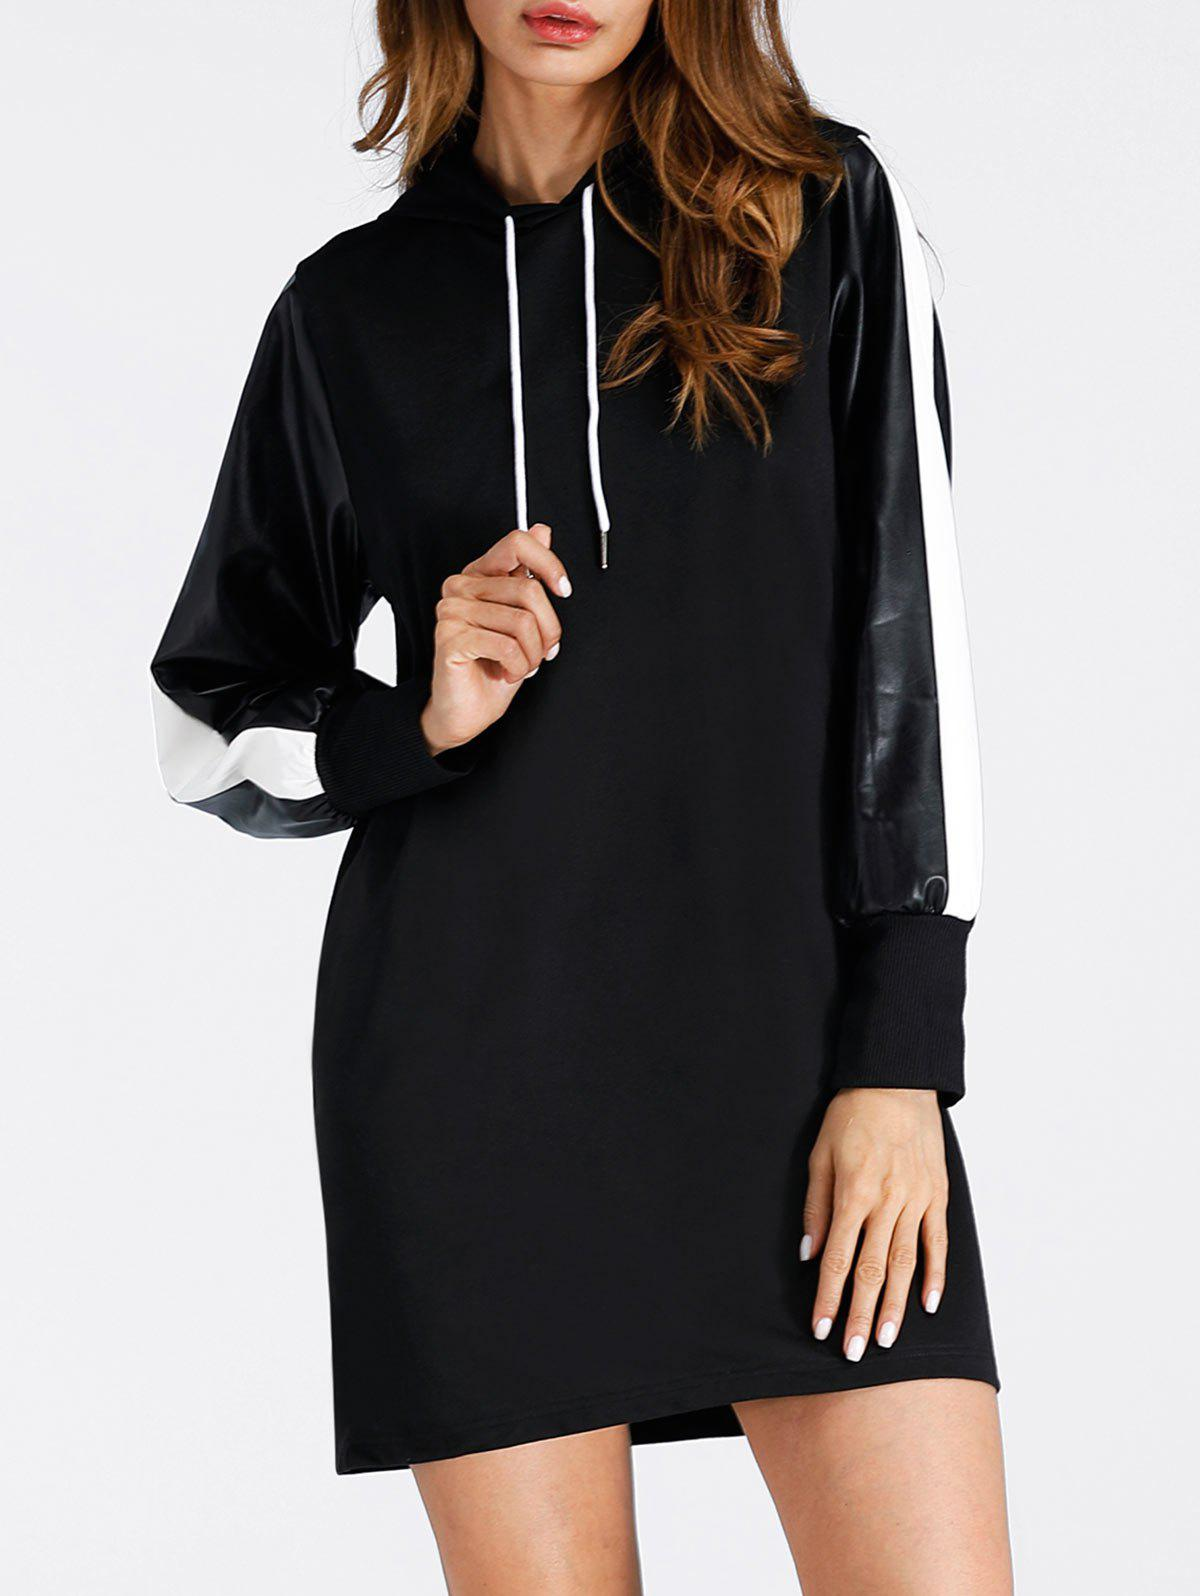 Faux Leather Insert Drawstring Mini Hoodie DressWOMEN<br><br>Size: S; Color: BLACK; Style: Casual; Material: Cotton,Polyester; Silhouette: Shift; Dresses Length: Mini; Neckline: Hooded; Sleeve Length: Long Sleeves; Pattern Type: Patchwork; With Belt: No; Season: Fall,Spring; Weight: 0.4000kg; Package Contents: 1 x Dress;